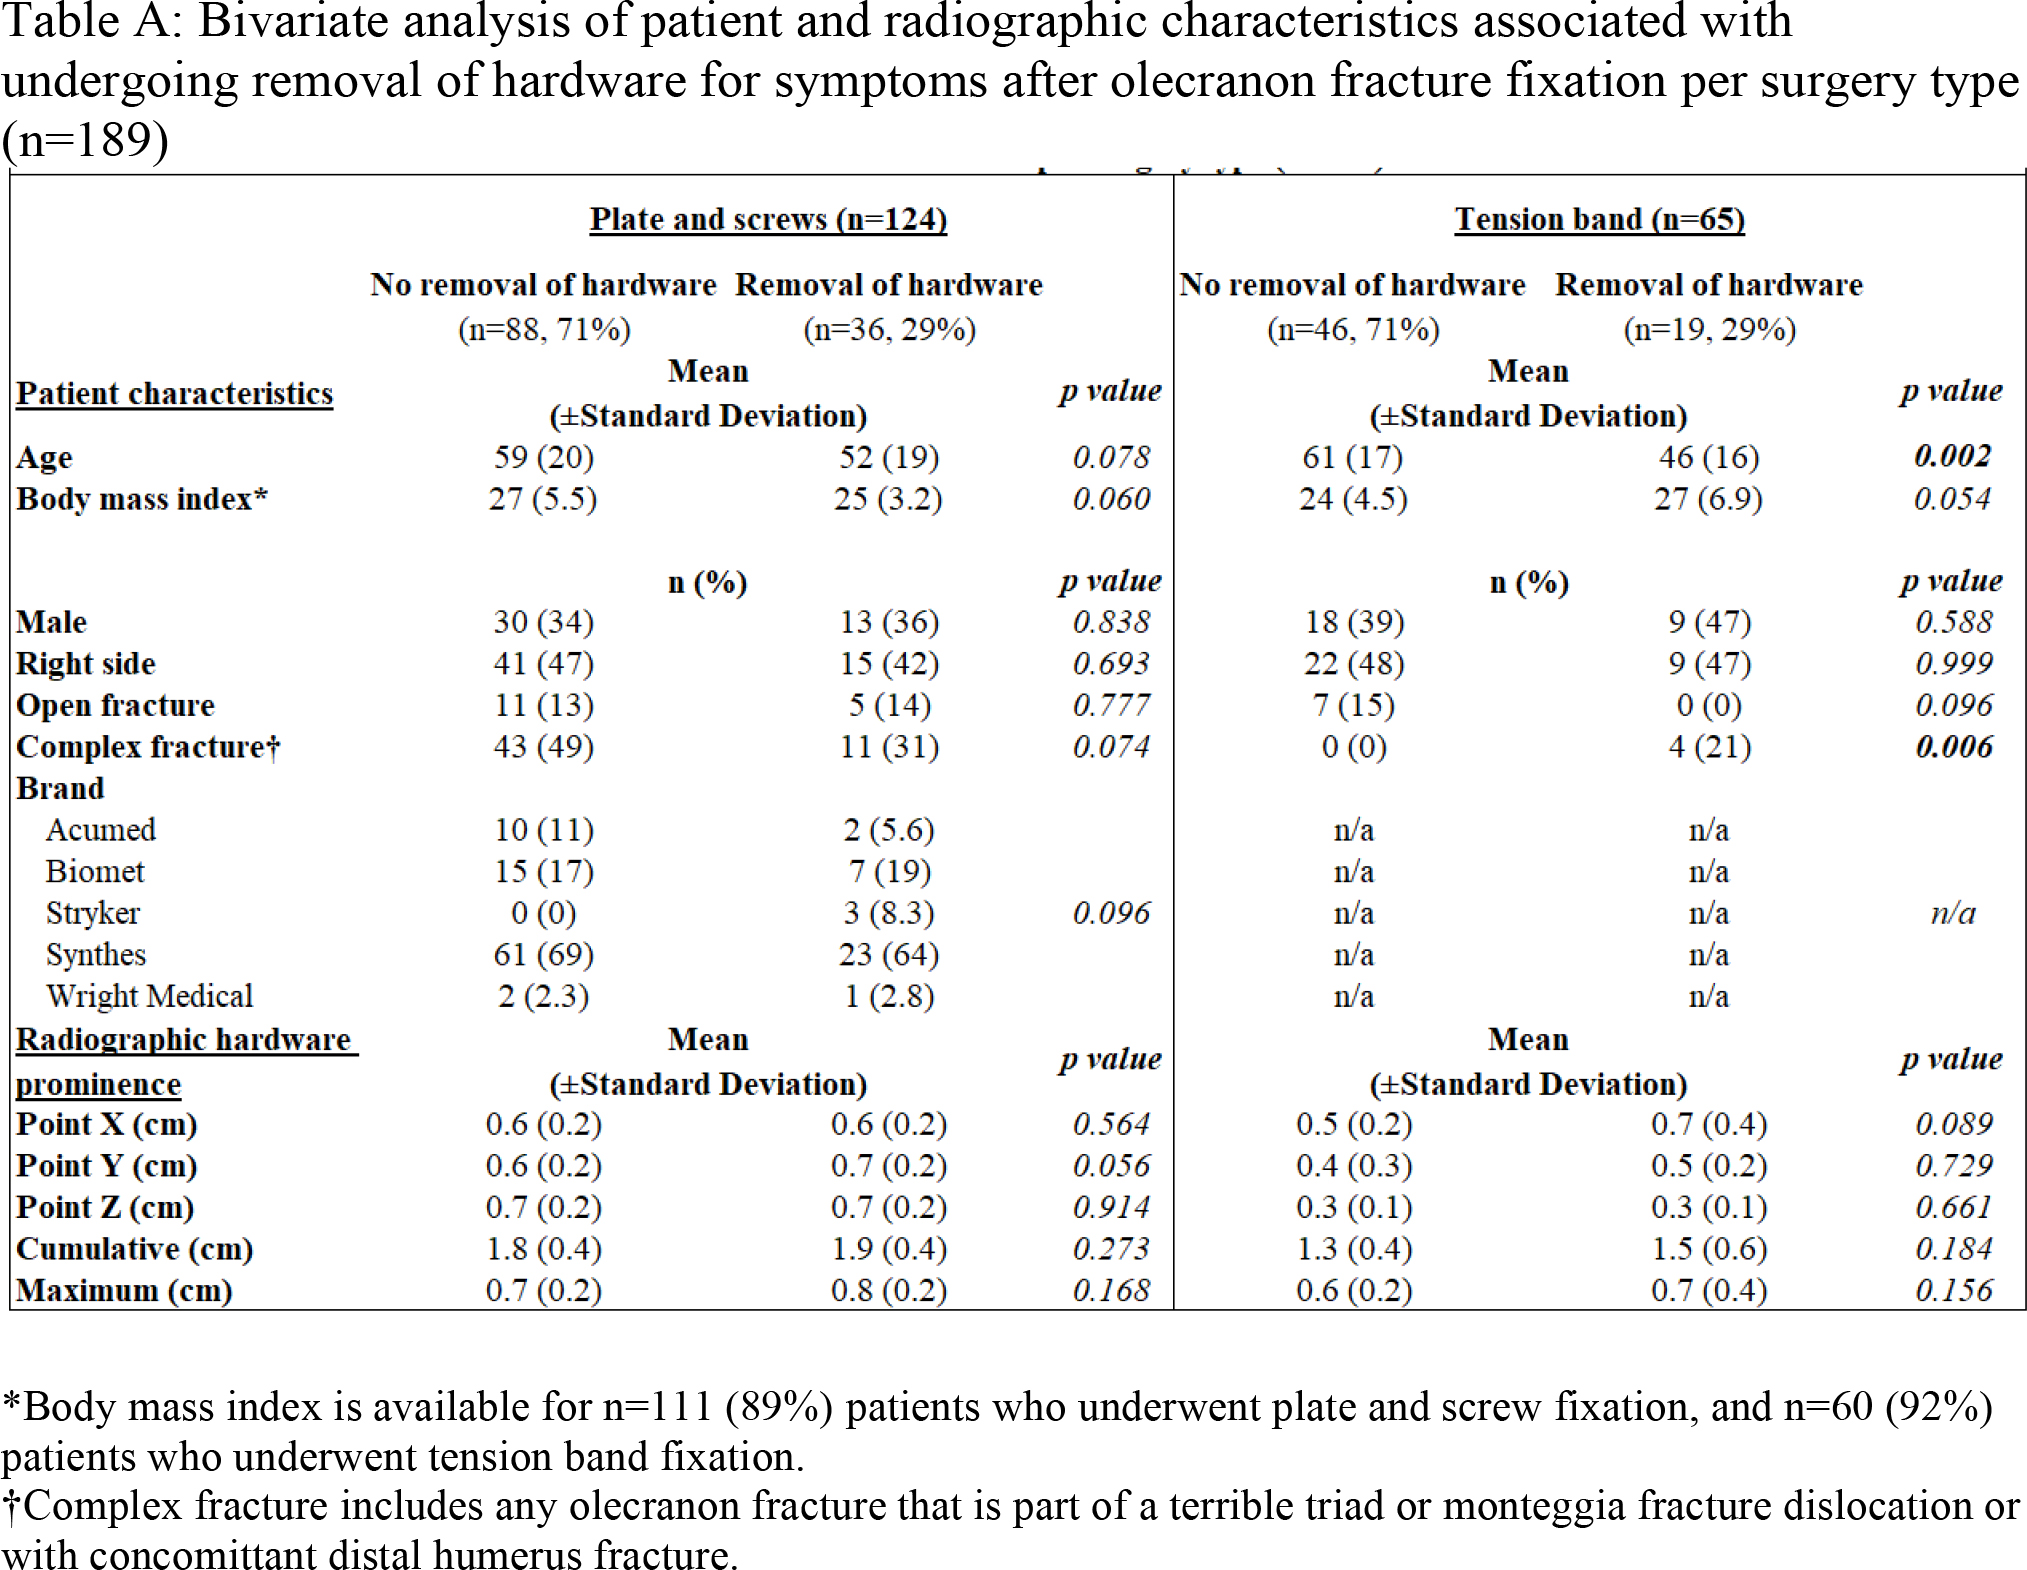 Bivariate analysis of patient and radiographic characteristics associated with undergoing removal of hardware for symptoms after olecranon fracture fixation per surgery type (n=189)